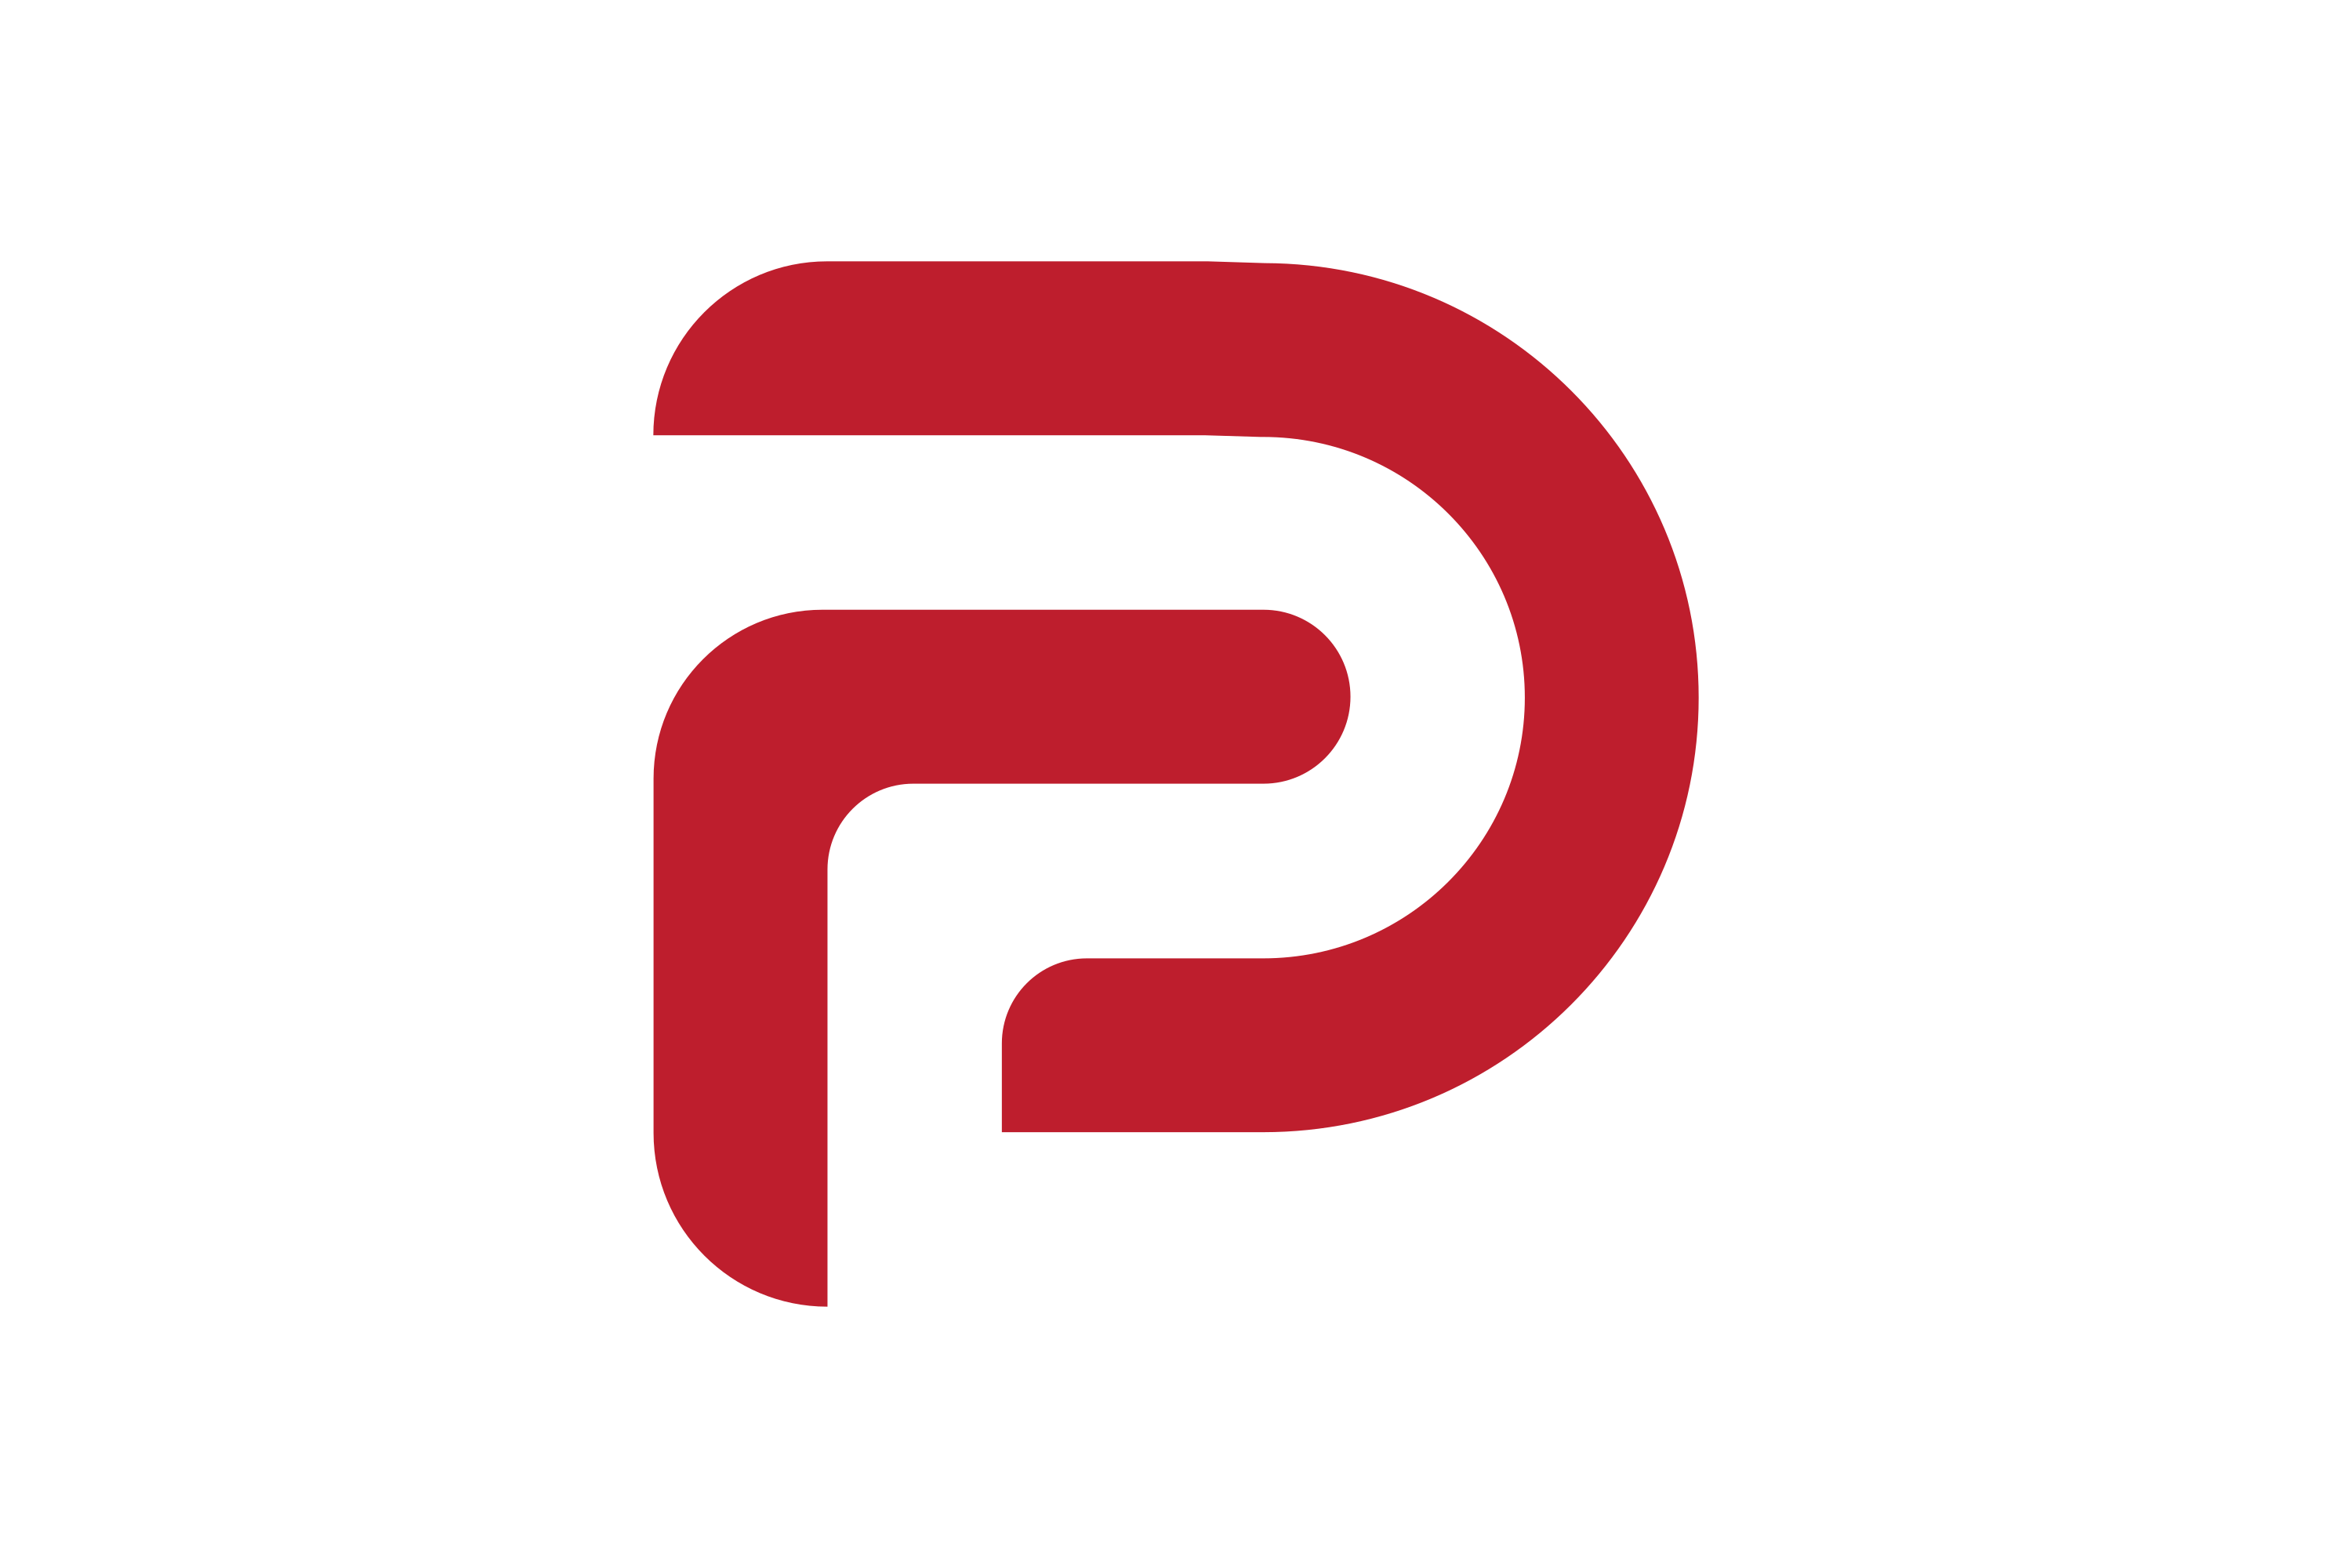 Download Parler Logo in SVG Vector or PNG File Format ...